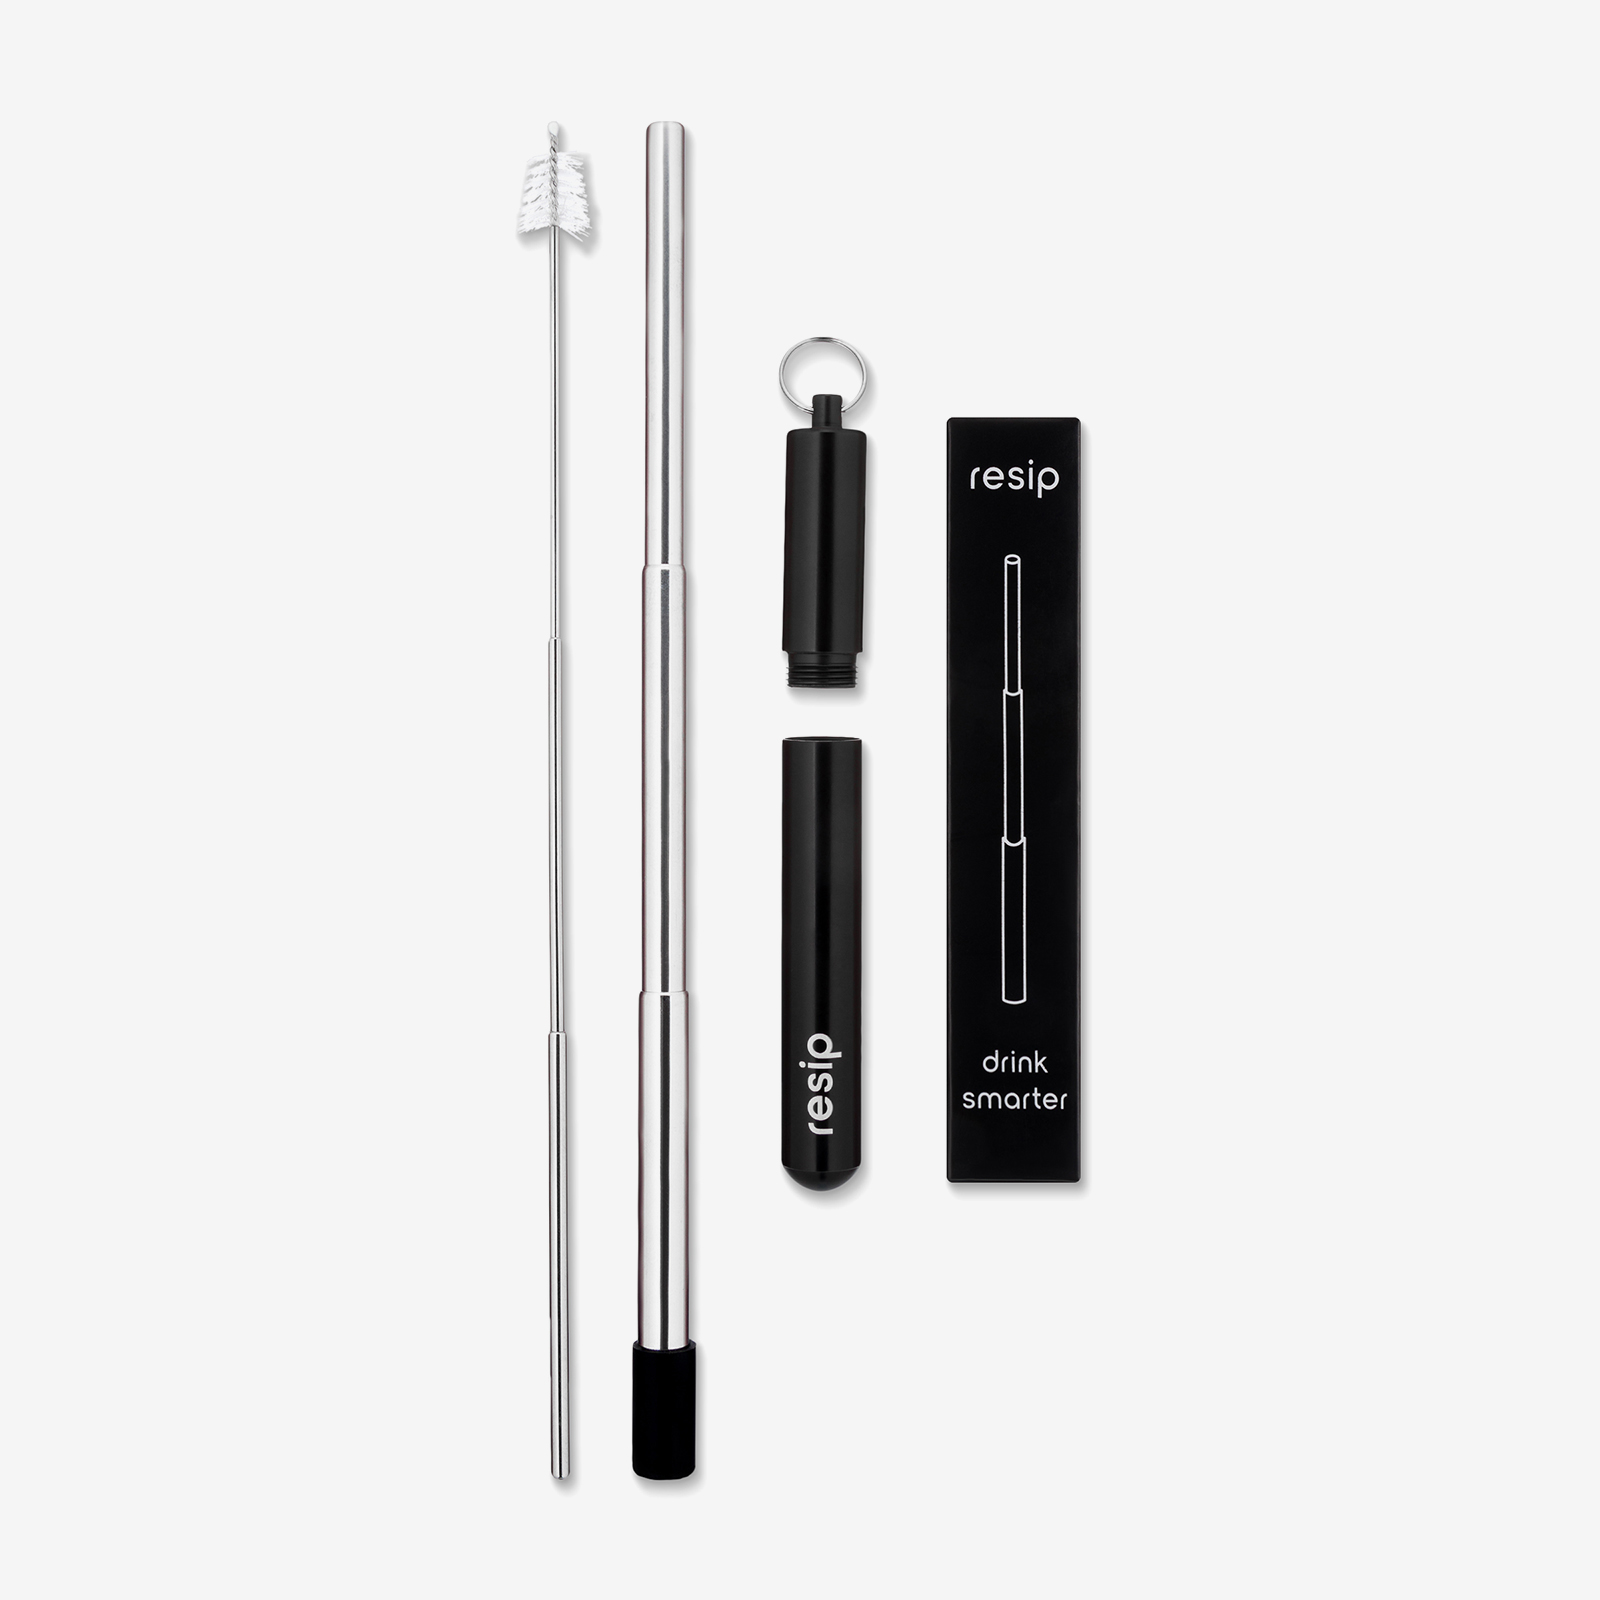 Steel straw product photo